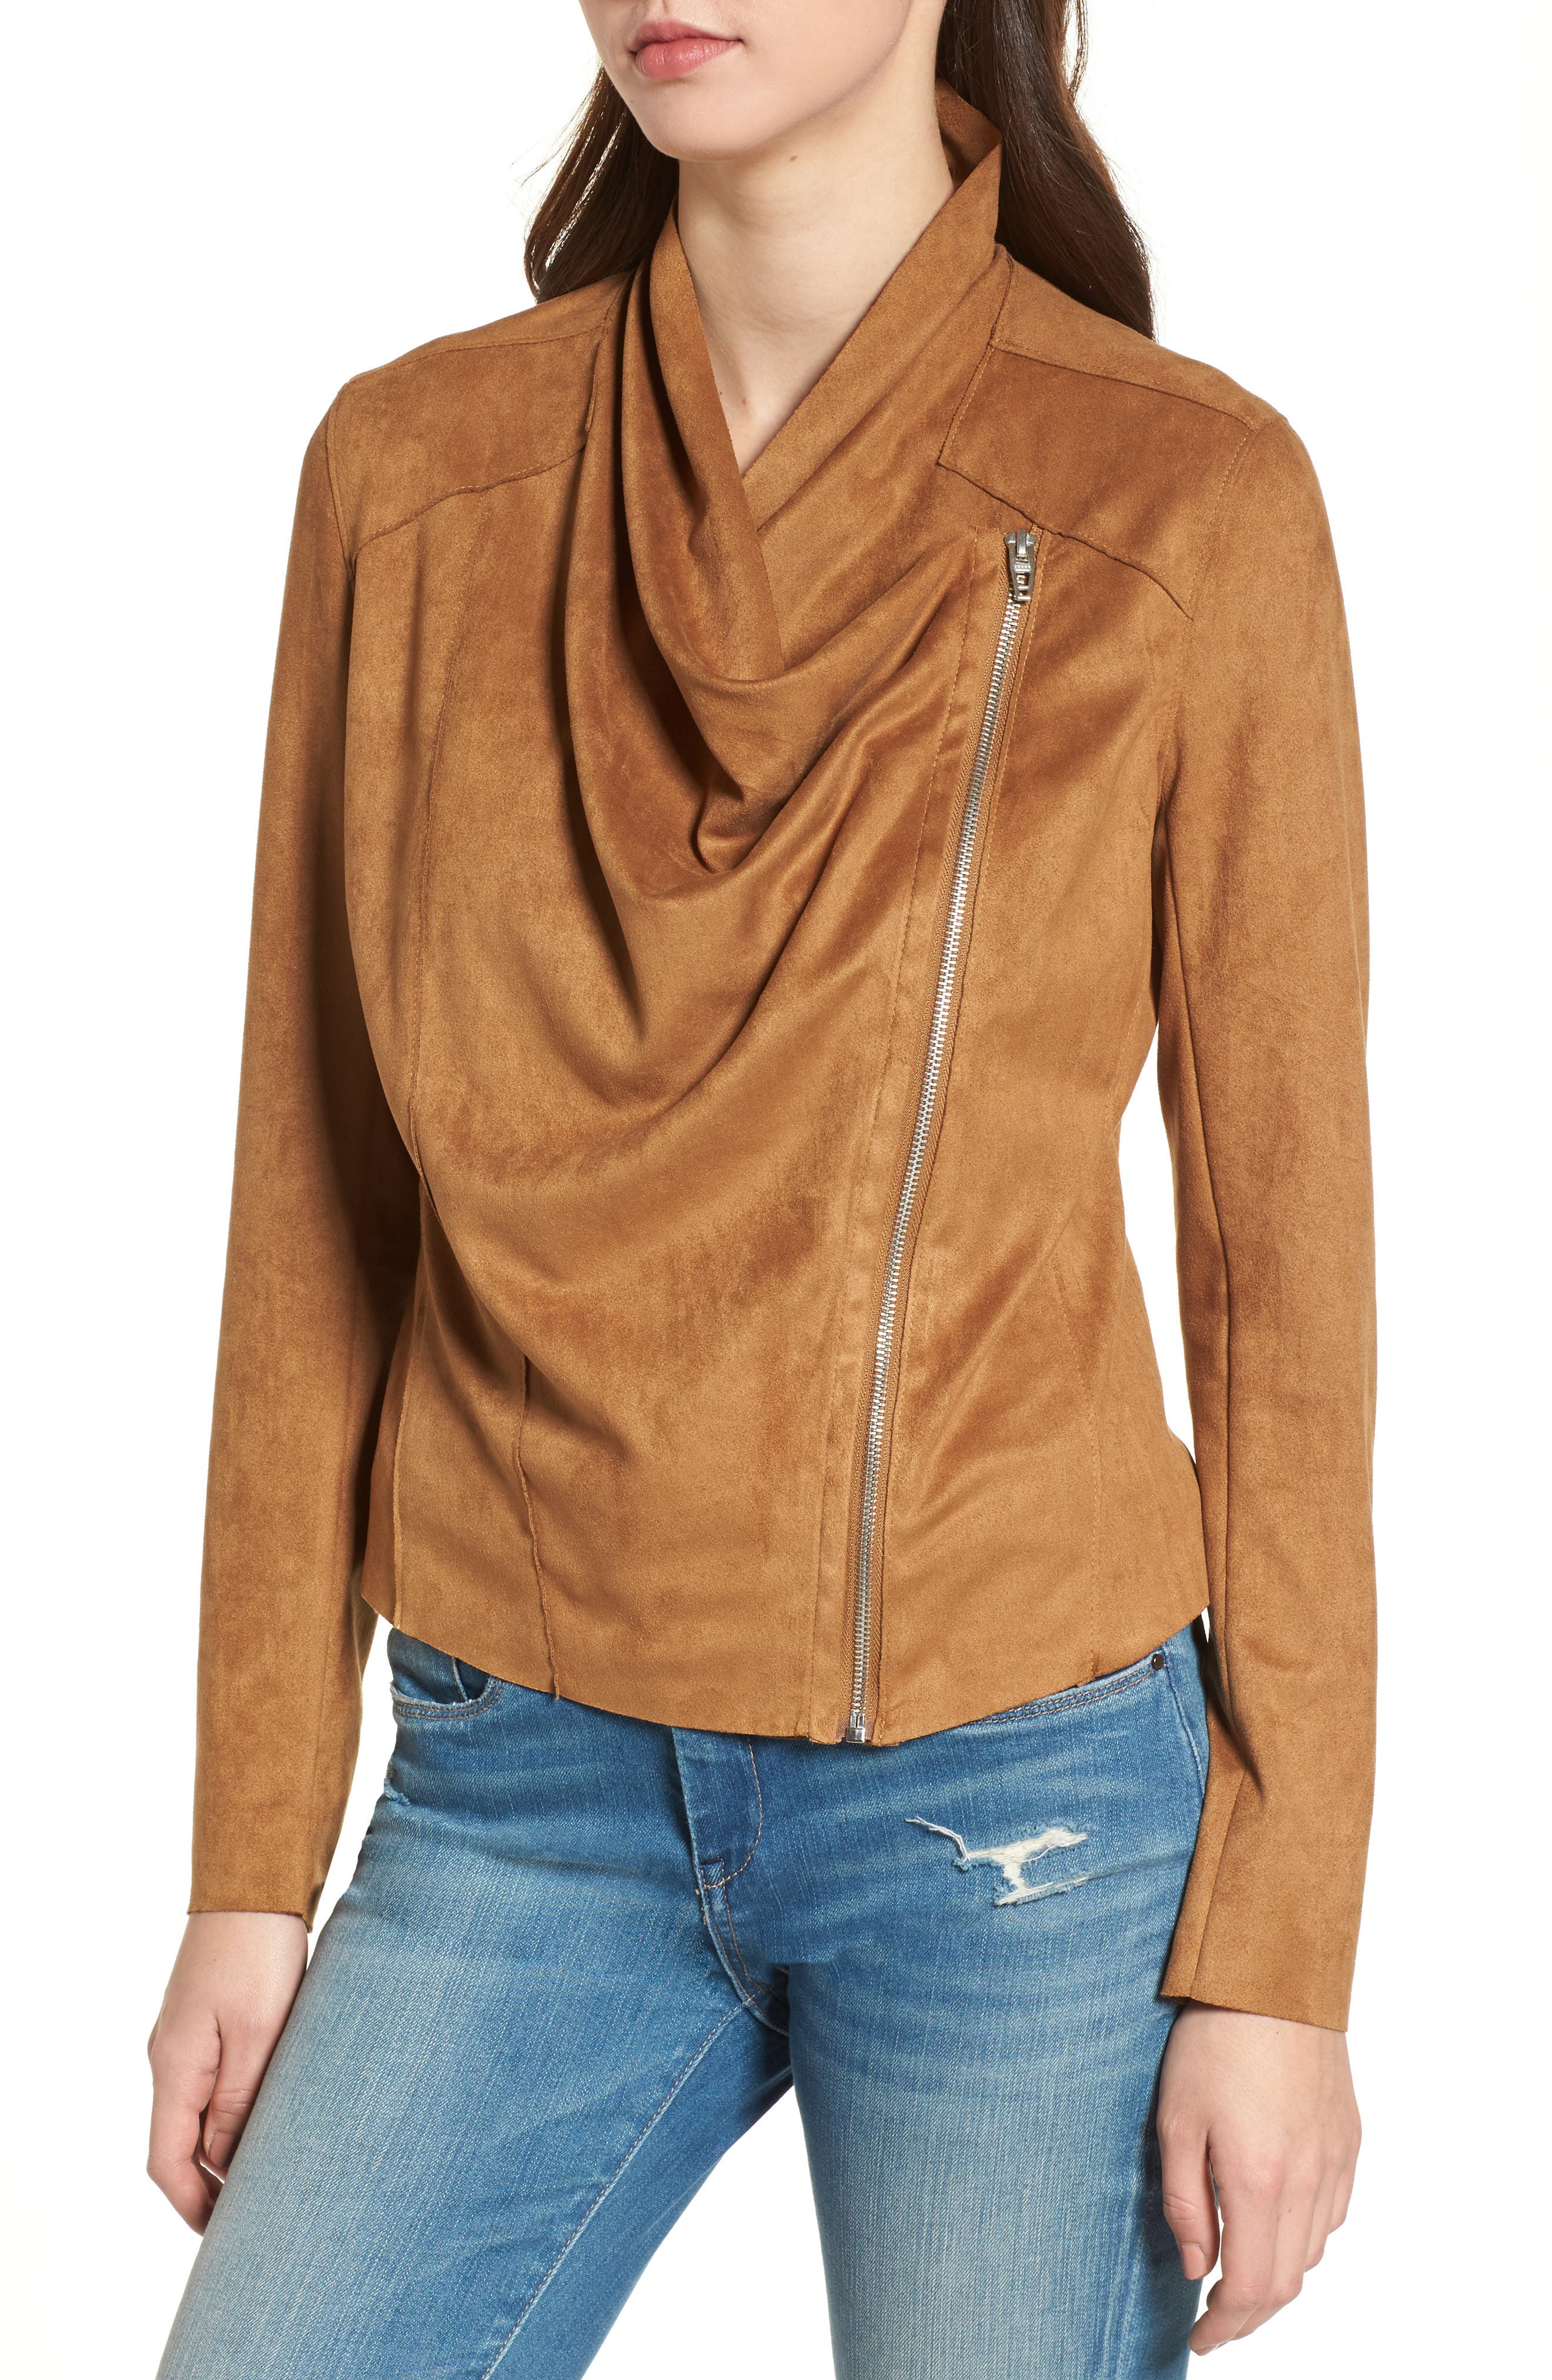 BLANKNYC,                             Drape Front Faux Suede Jacket,                             Alternate thumbnail 4, color,                             CAMEL BACK BROWN